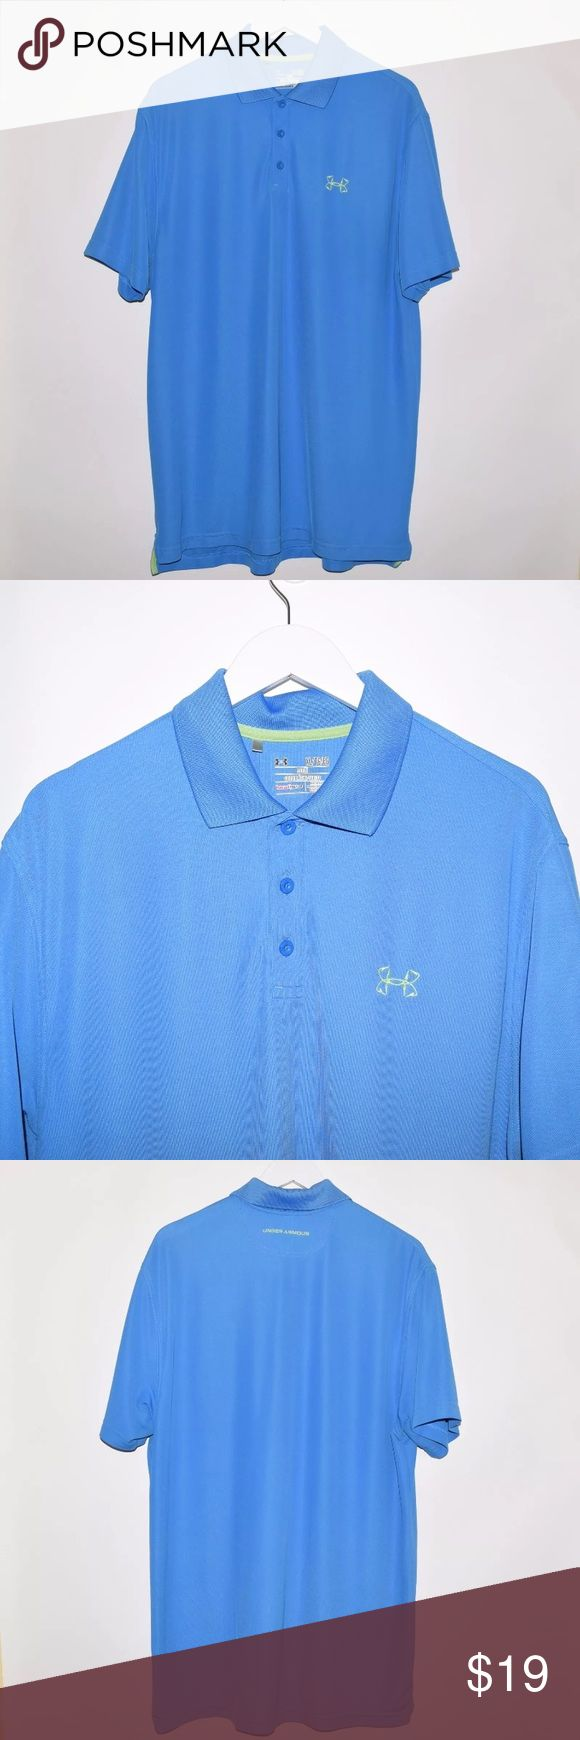 Under Armour Heat Gear Loose SS Golf Polo Shirt Brand: Under Armour Item name: Men's Heat Gear Loose GolfPolo Shirt   Color: Blue / Green Condition: This is a pre-owned item. This item is in excellent used condition with no stains, rips, holes, etc. Comes from a smoke free home. Size: XL Measurements: Pit to Pit - 24 inches Shoulder to base - Front: 31 inches Back: 32 inches Under Armour Shirts Polos